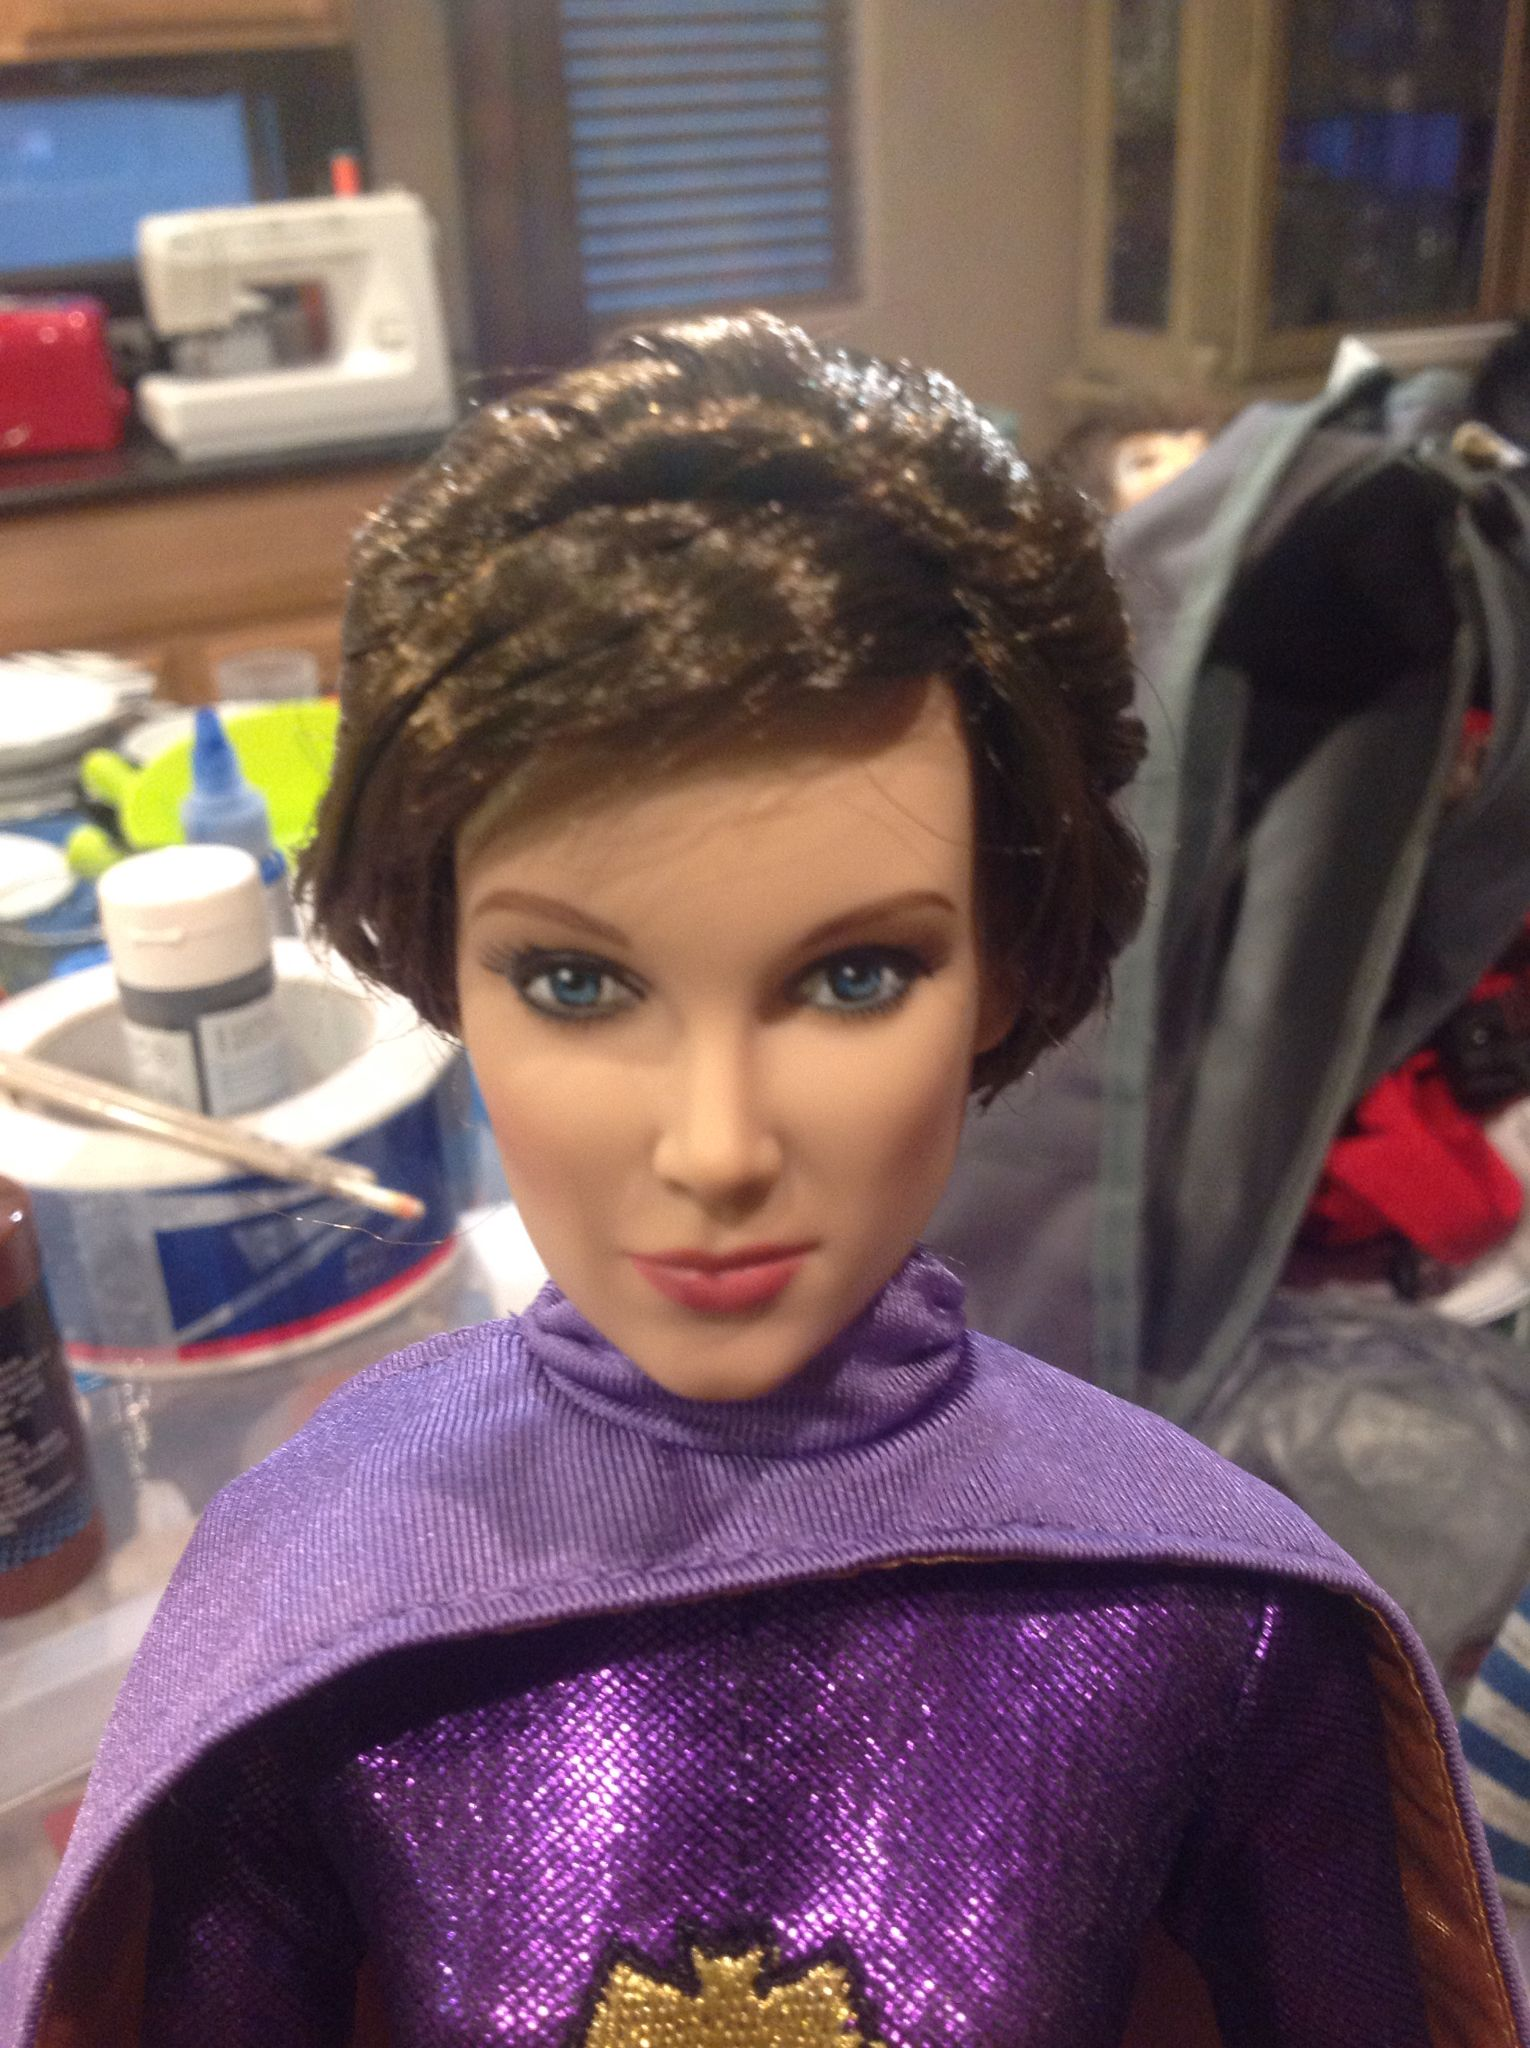 This is how she came from Factory before I enhanced her face and re-fixed her wig.